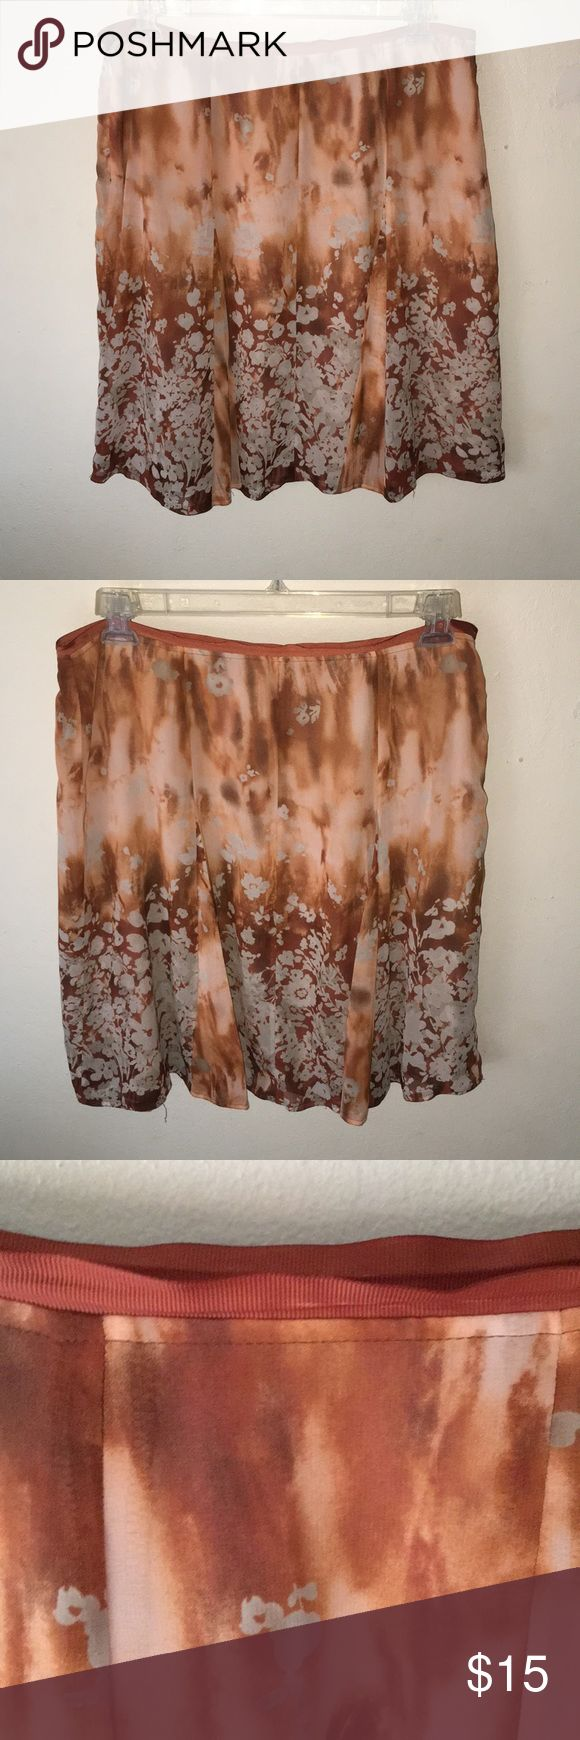 Flirty Skirt This is a beautiful skirt fun and flirty and very flowy . Can be paired with a tank top and cardigan or worn with a bodysuit. It has a side zipper as well . Great condition . Colors of this skirt are: tan, cream, brown, burnt orange. Please note, as shown in the picture the clasps on the side of the skirt will need to be reinforced its slightly loose. L: 24 1/2 inches Worthington Skirts Mini